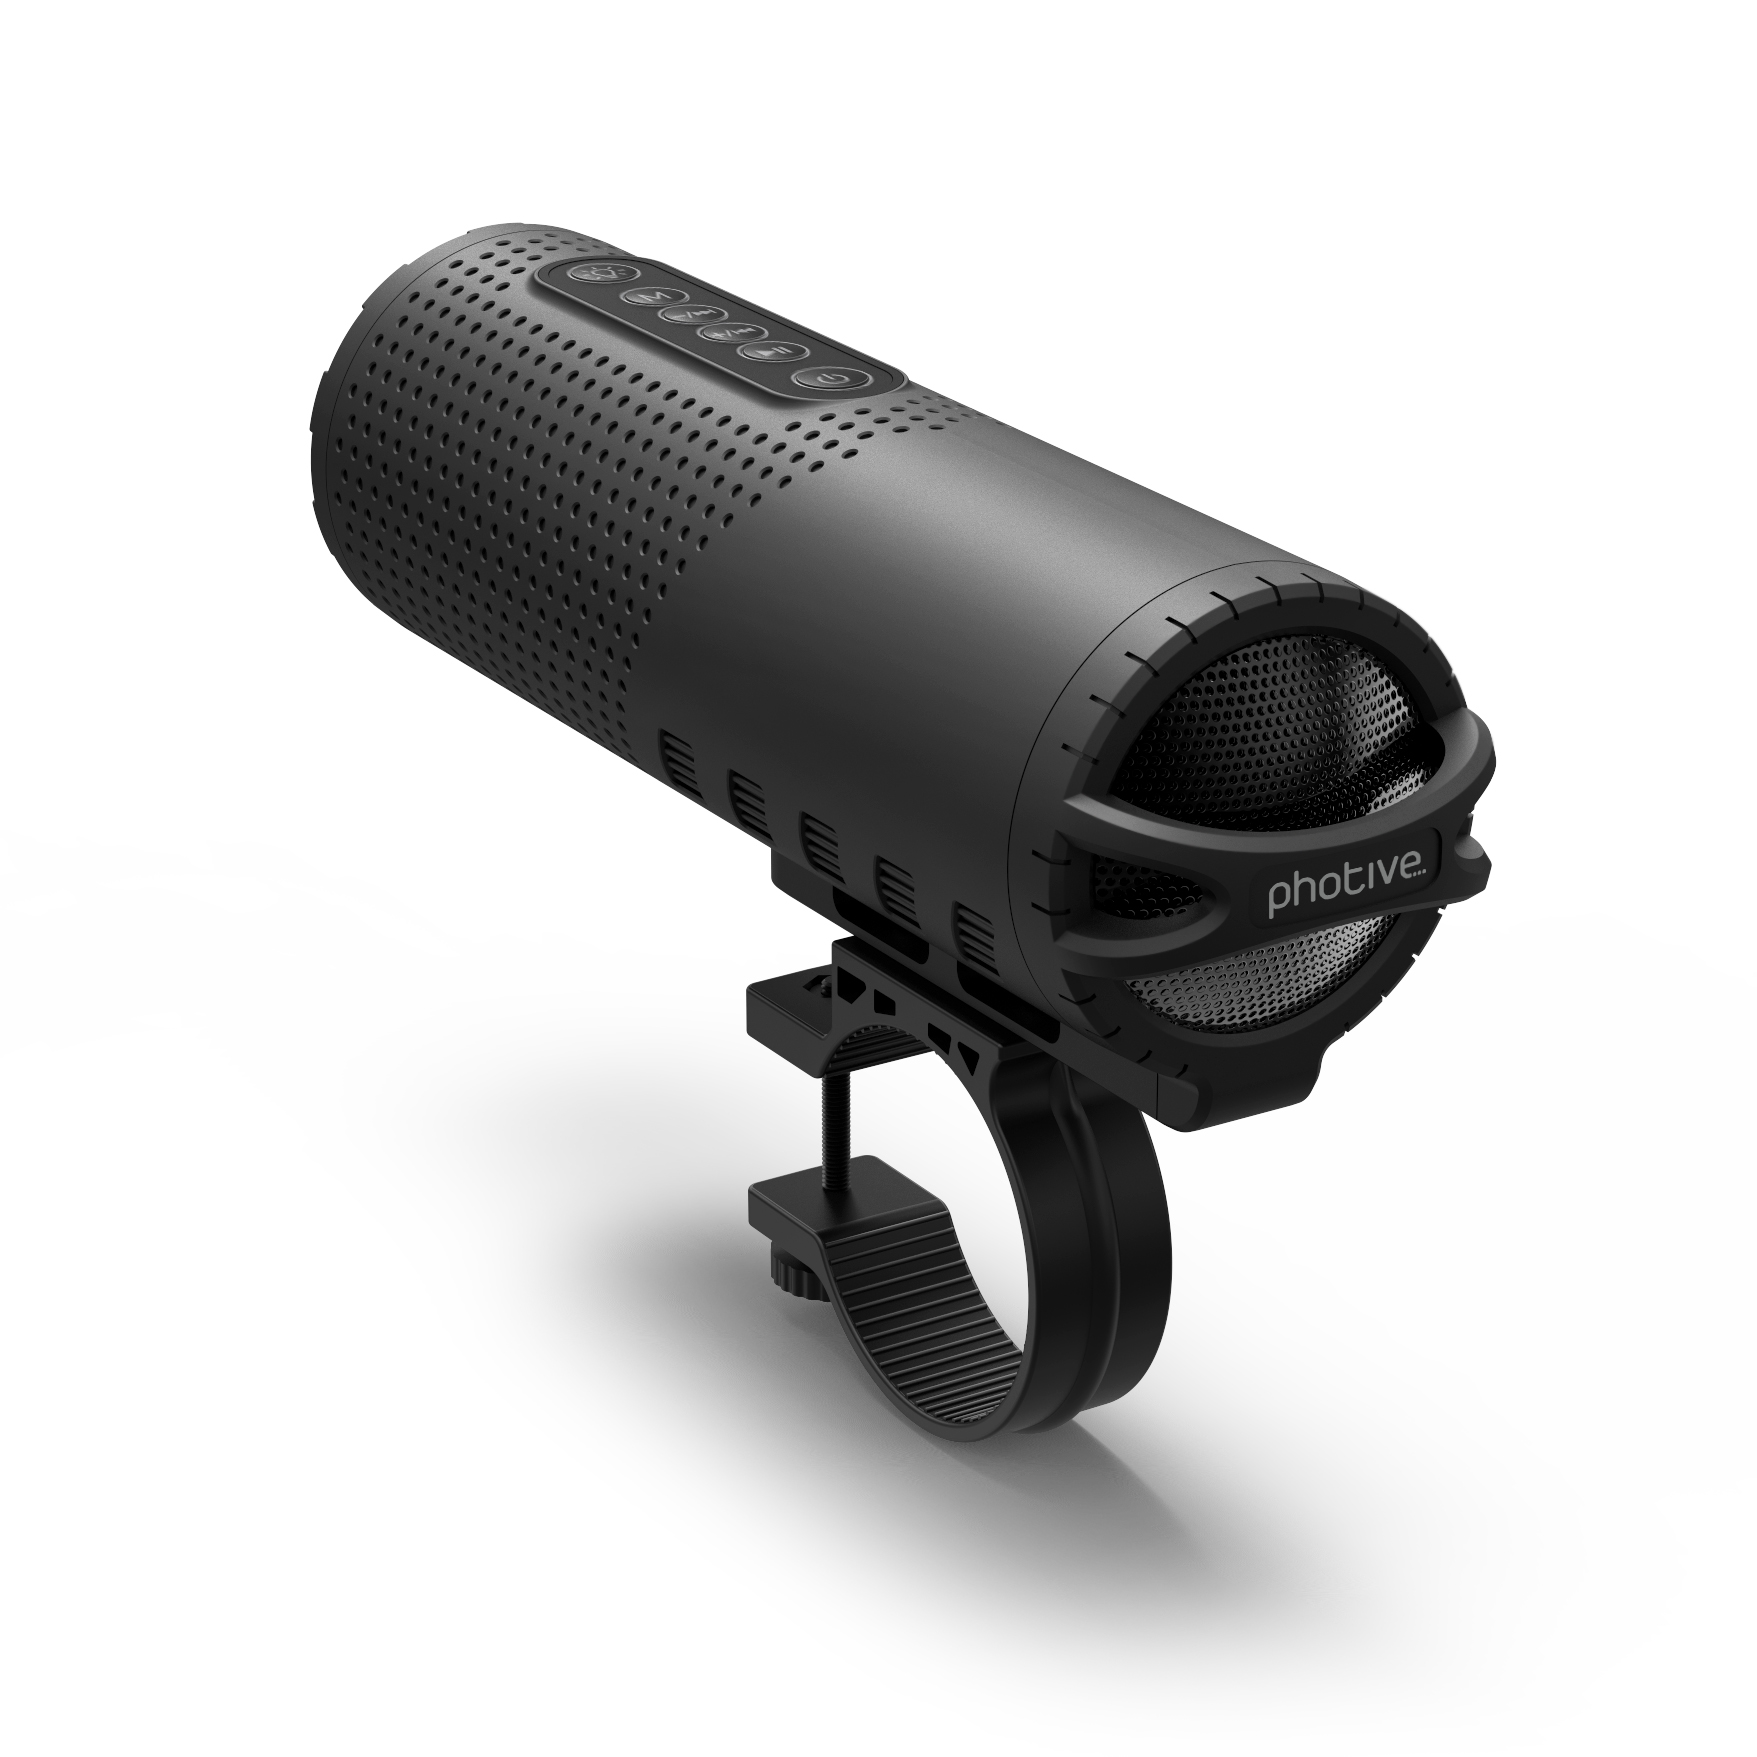 Photive Rechargeable LED Bike Flashlight with Built-in Wireless Bluetooth Speaker. All Weather